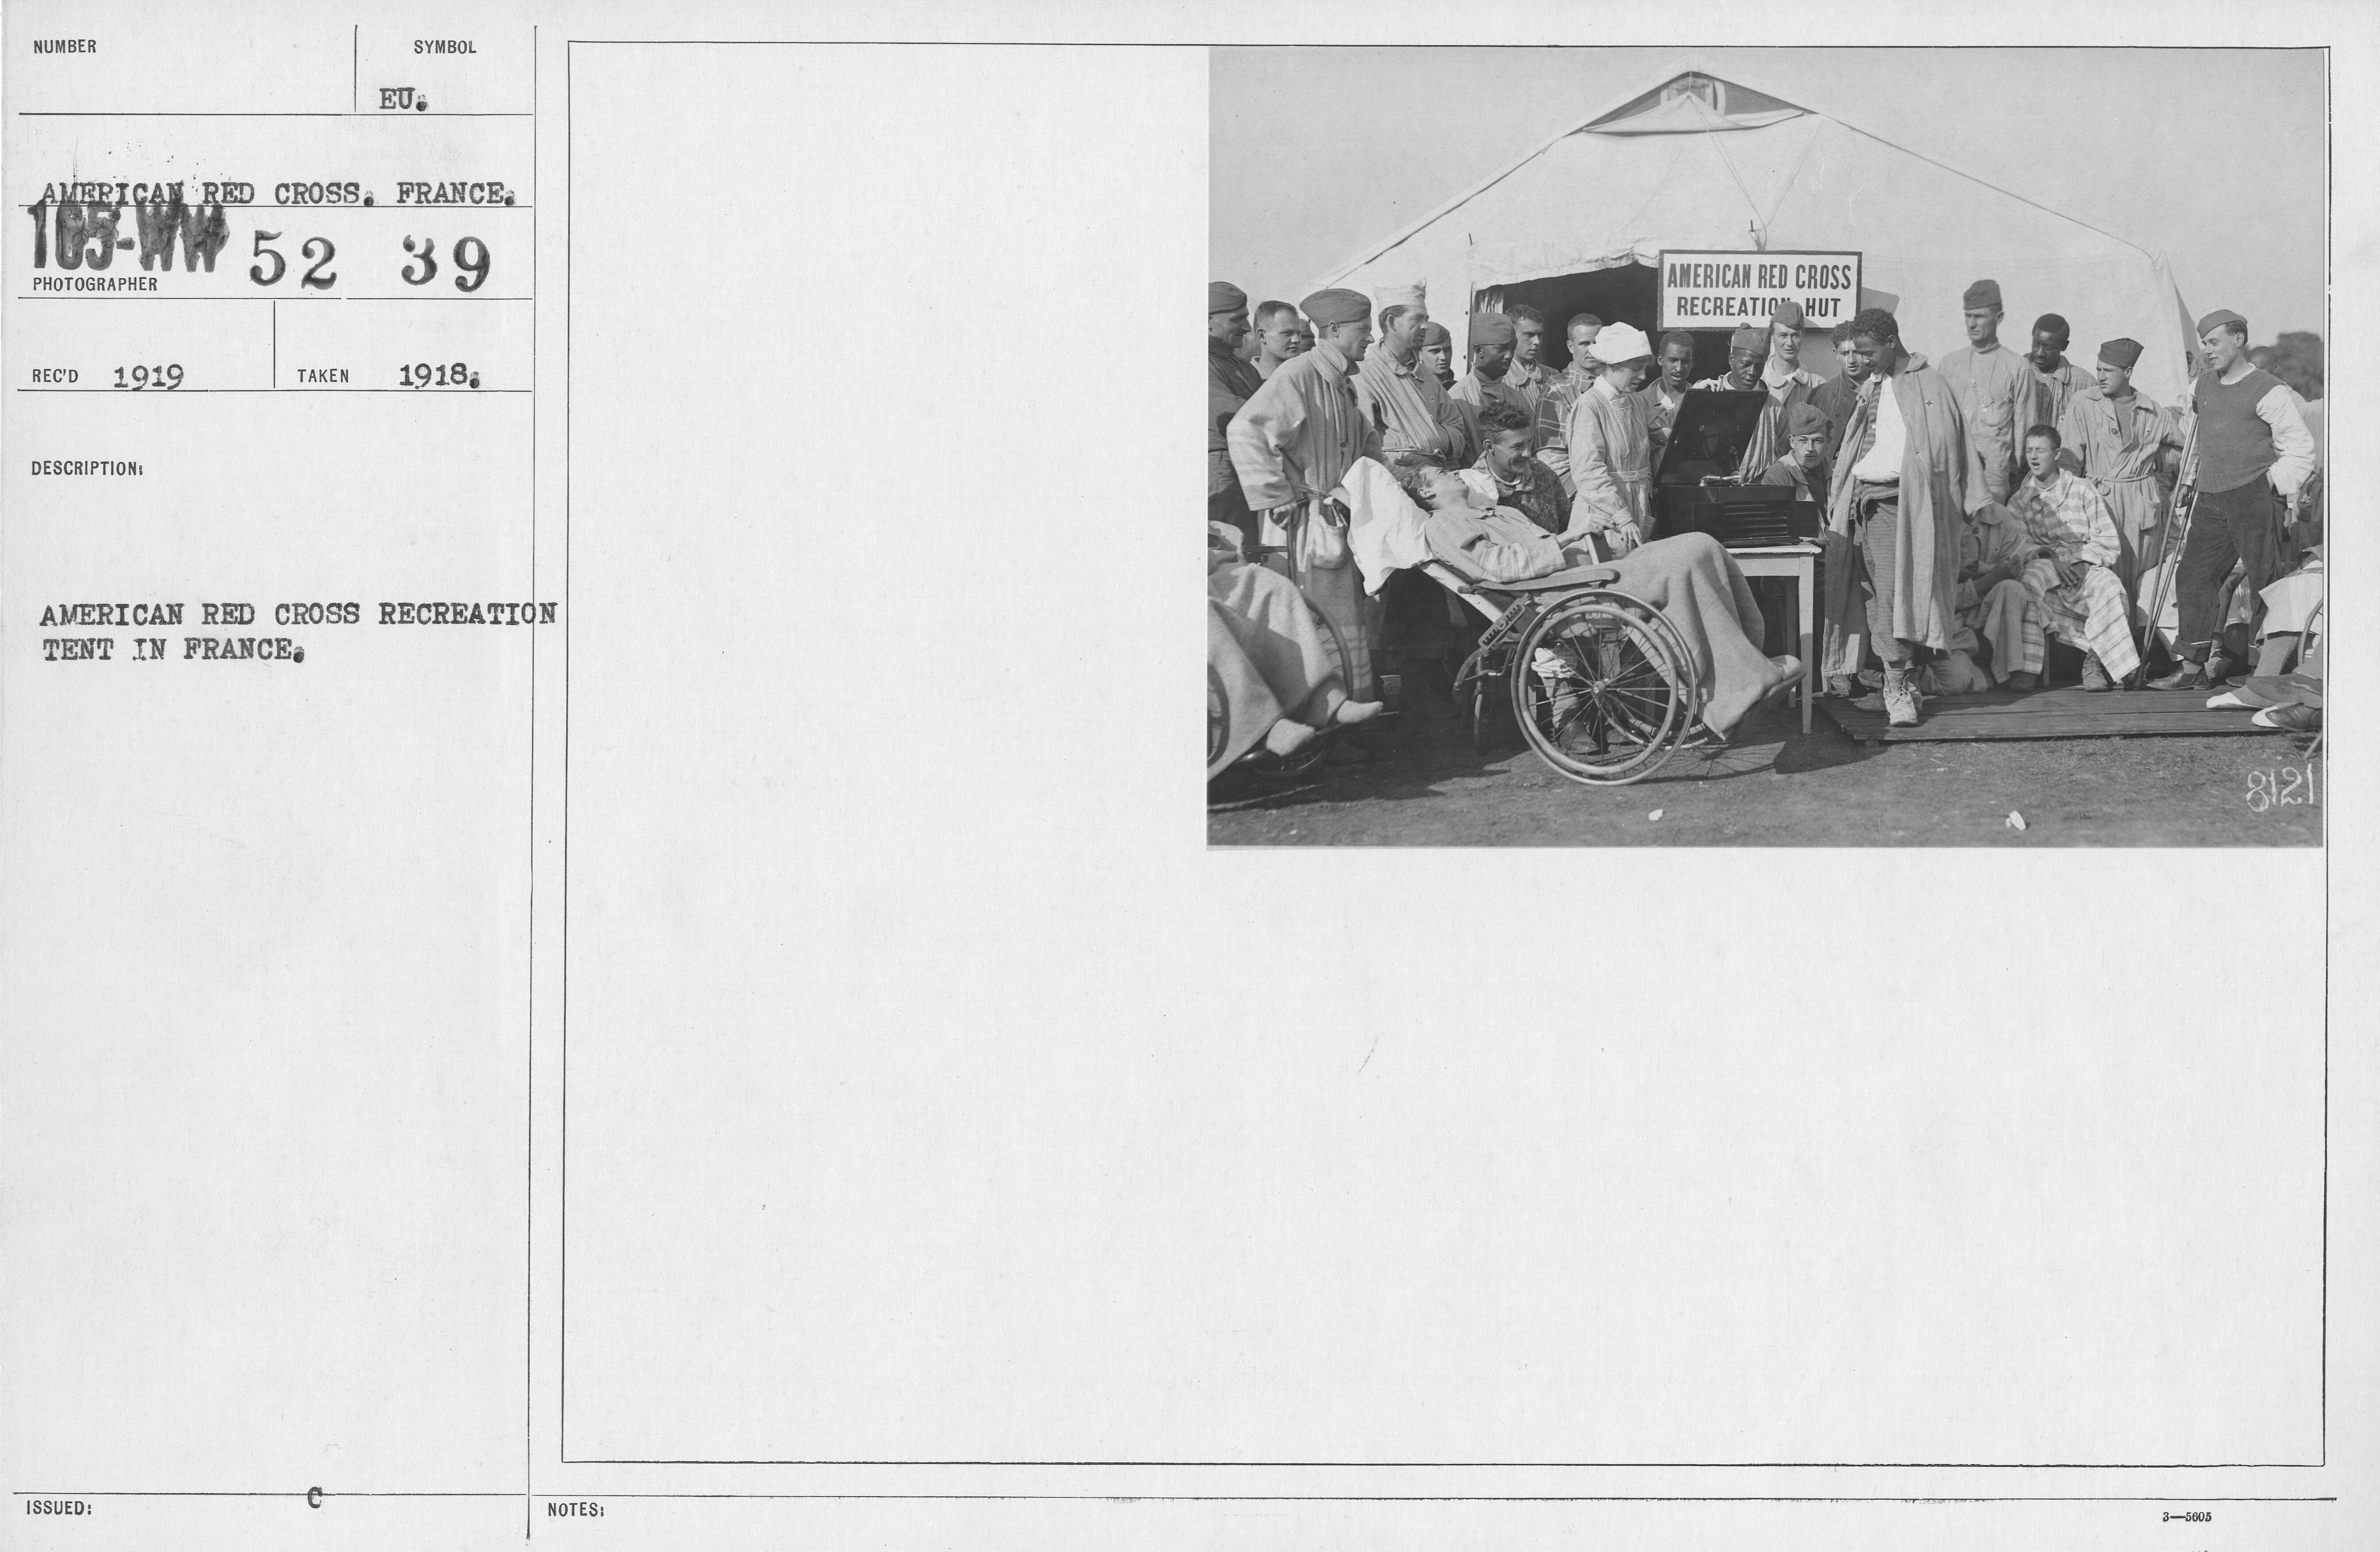 American Red Cross - Miscellaneous - American Red Cross recreation tent in France